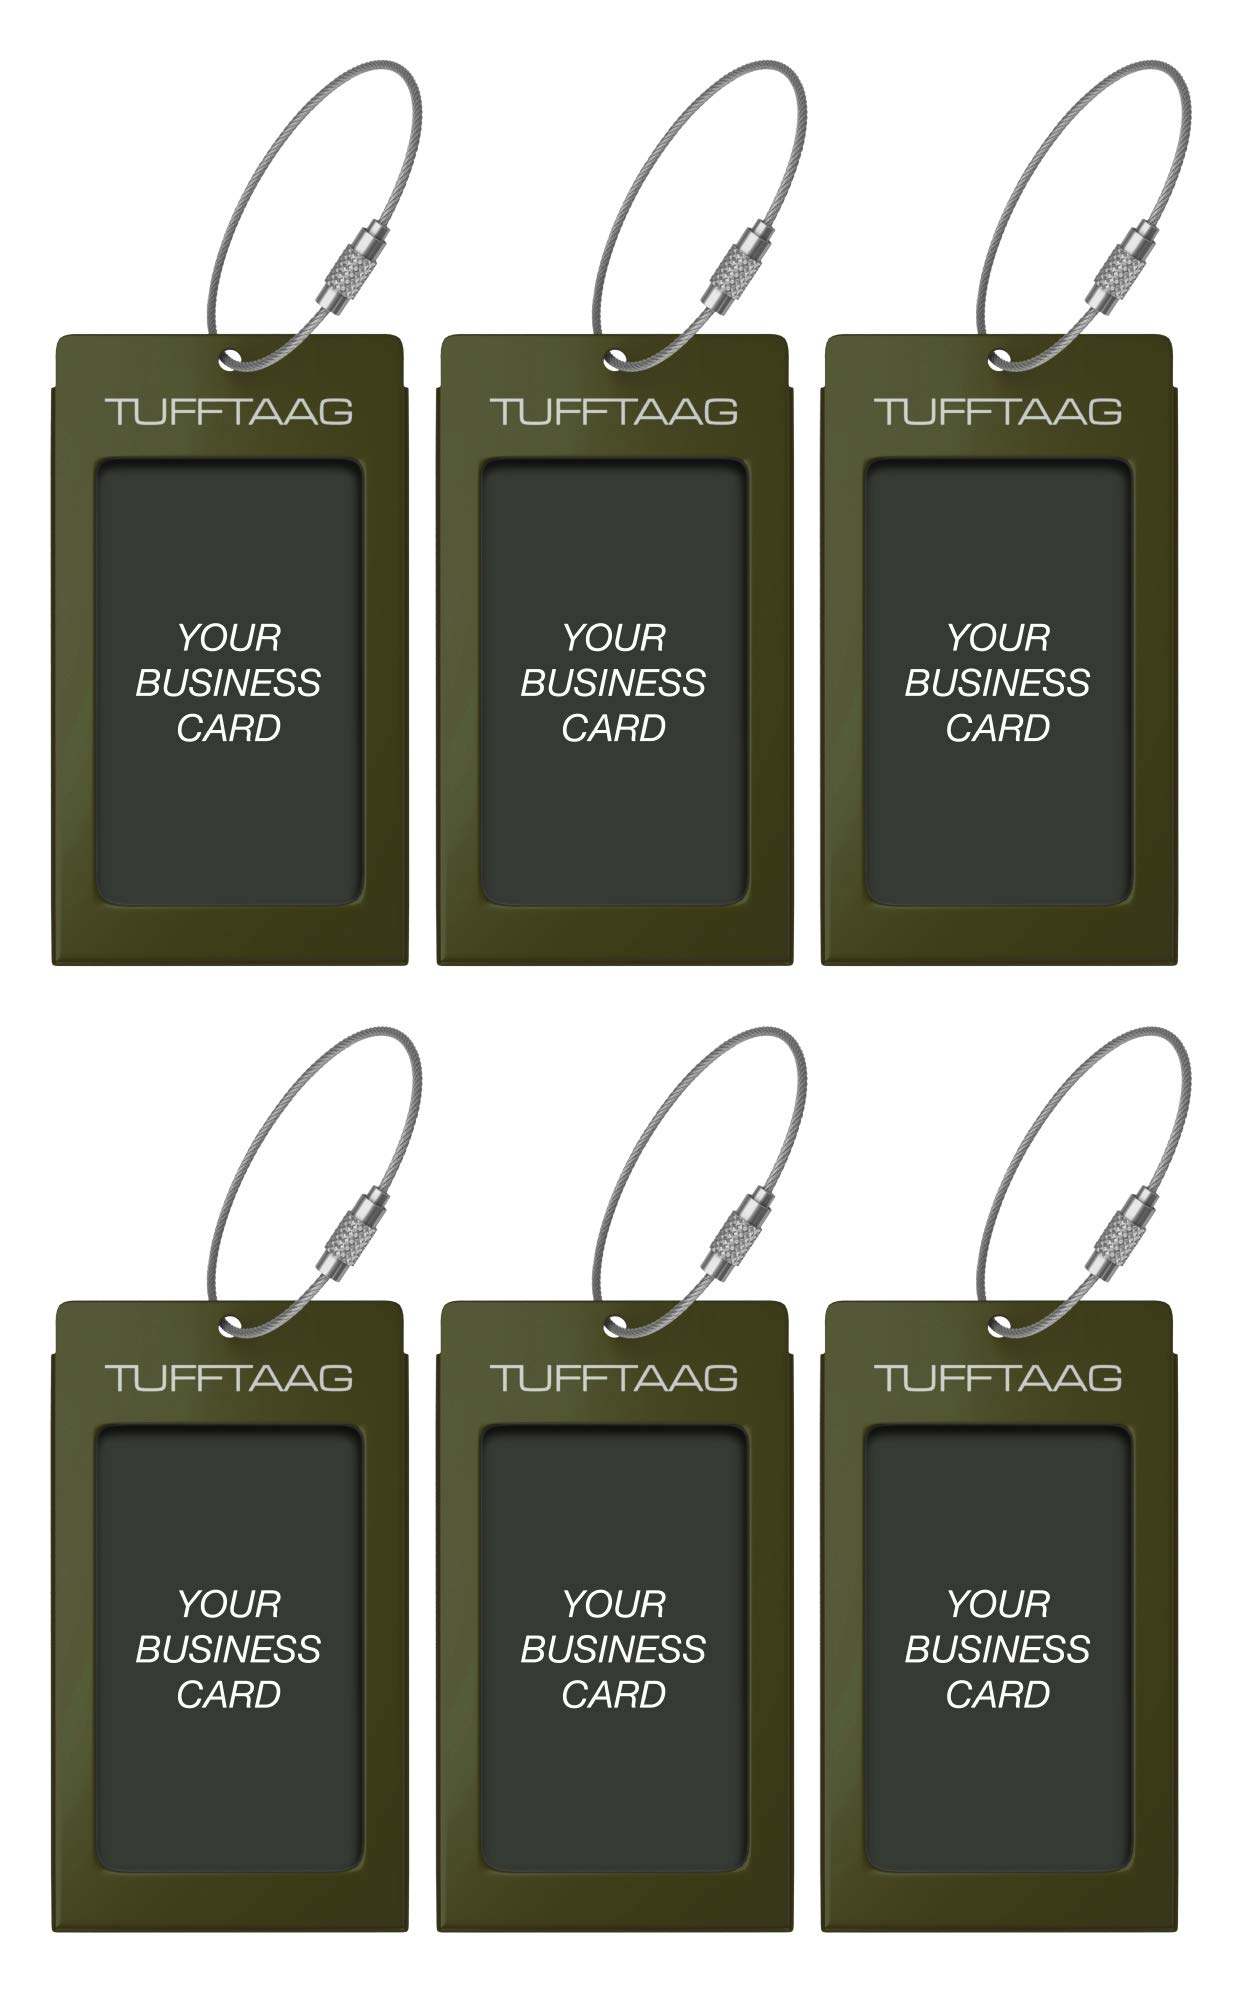 Luggage Tags TUFFTAAG for Business Cards, Metal Suitcase Labels, 6 Pack Bundle (6 Green) by ProudGuy